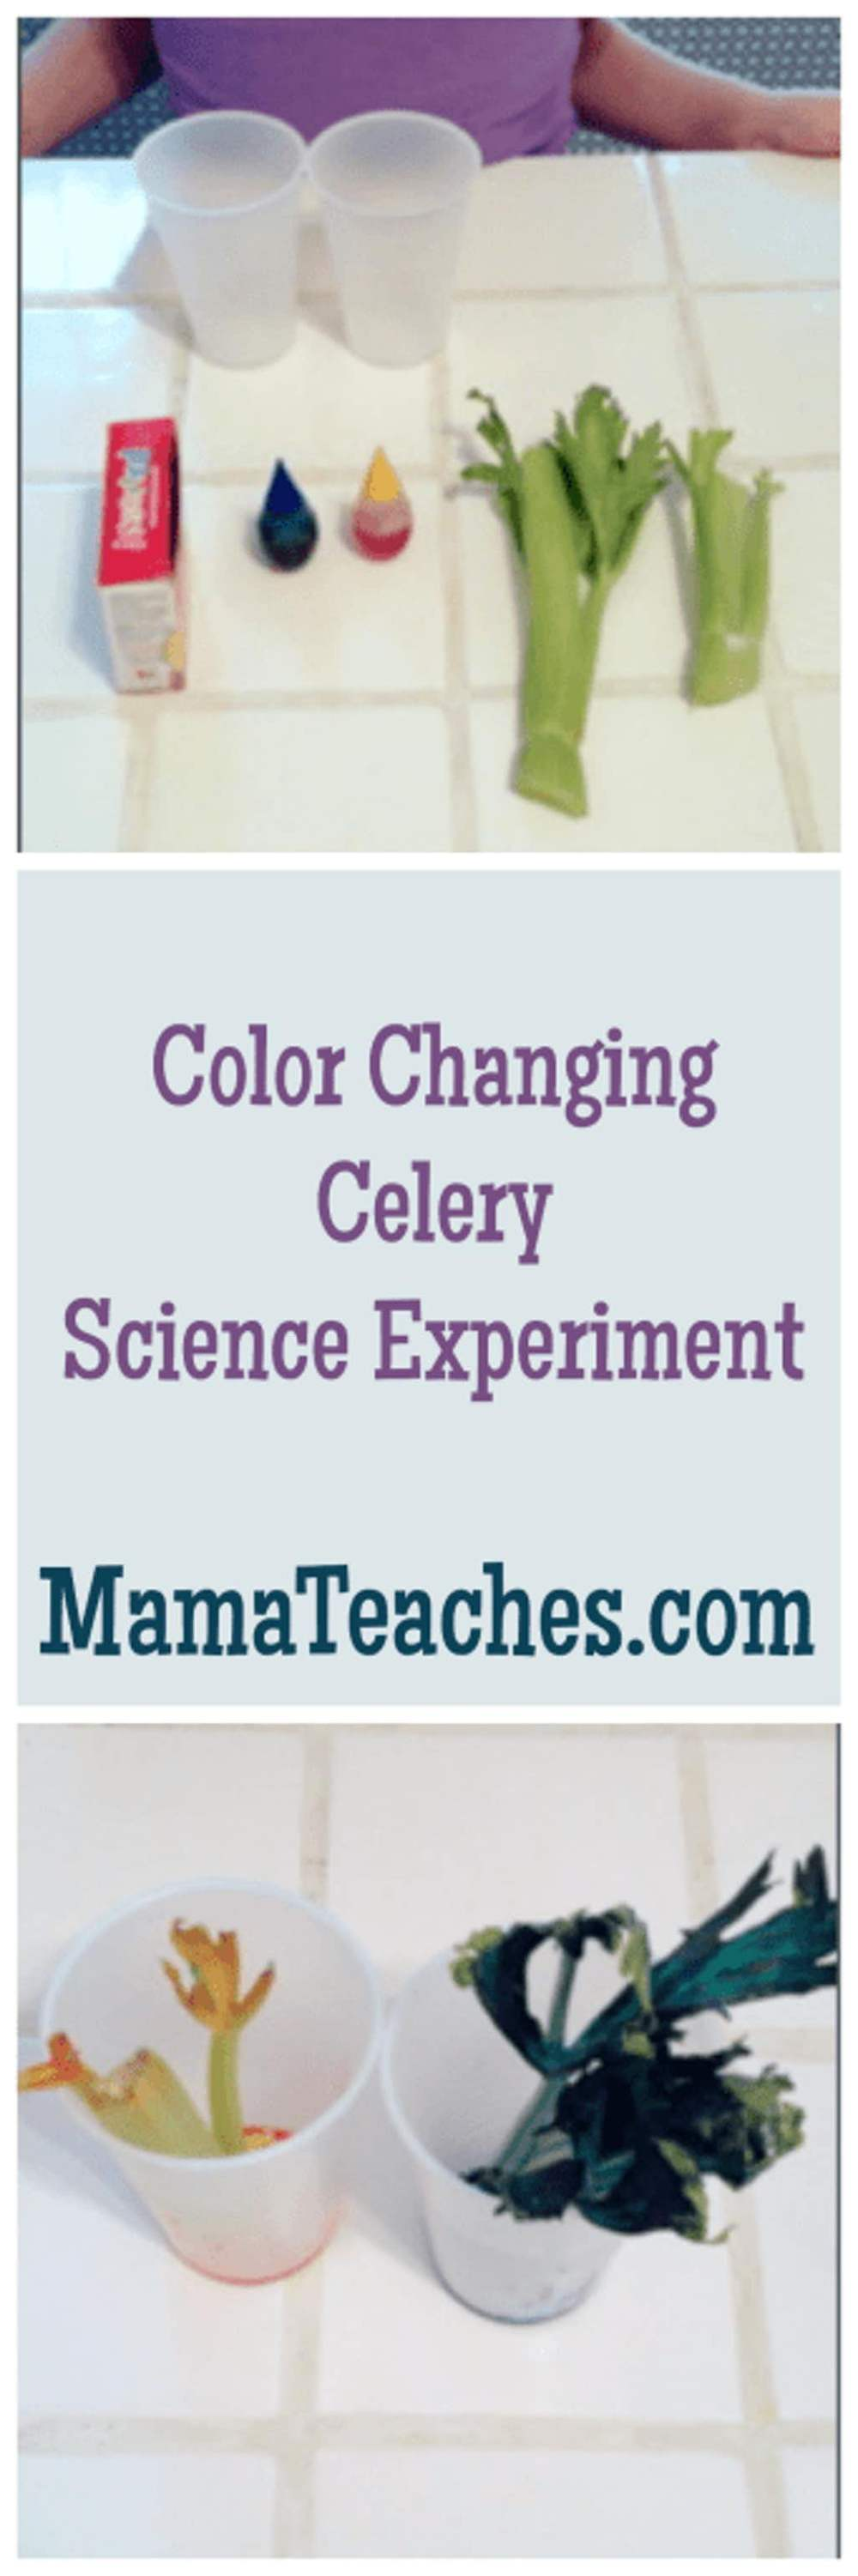 medium resolution of Color Changing Celery Experiment - Mama Teaches